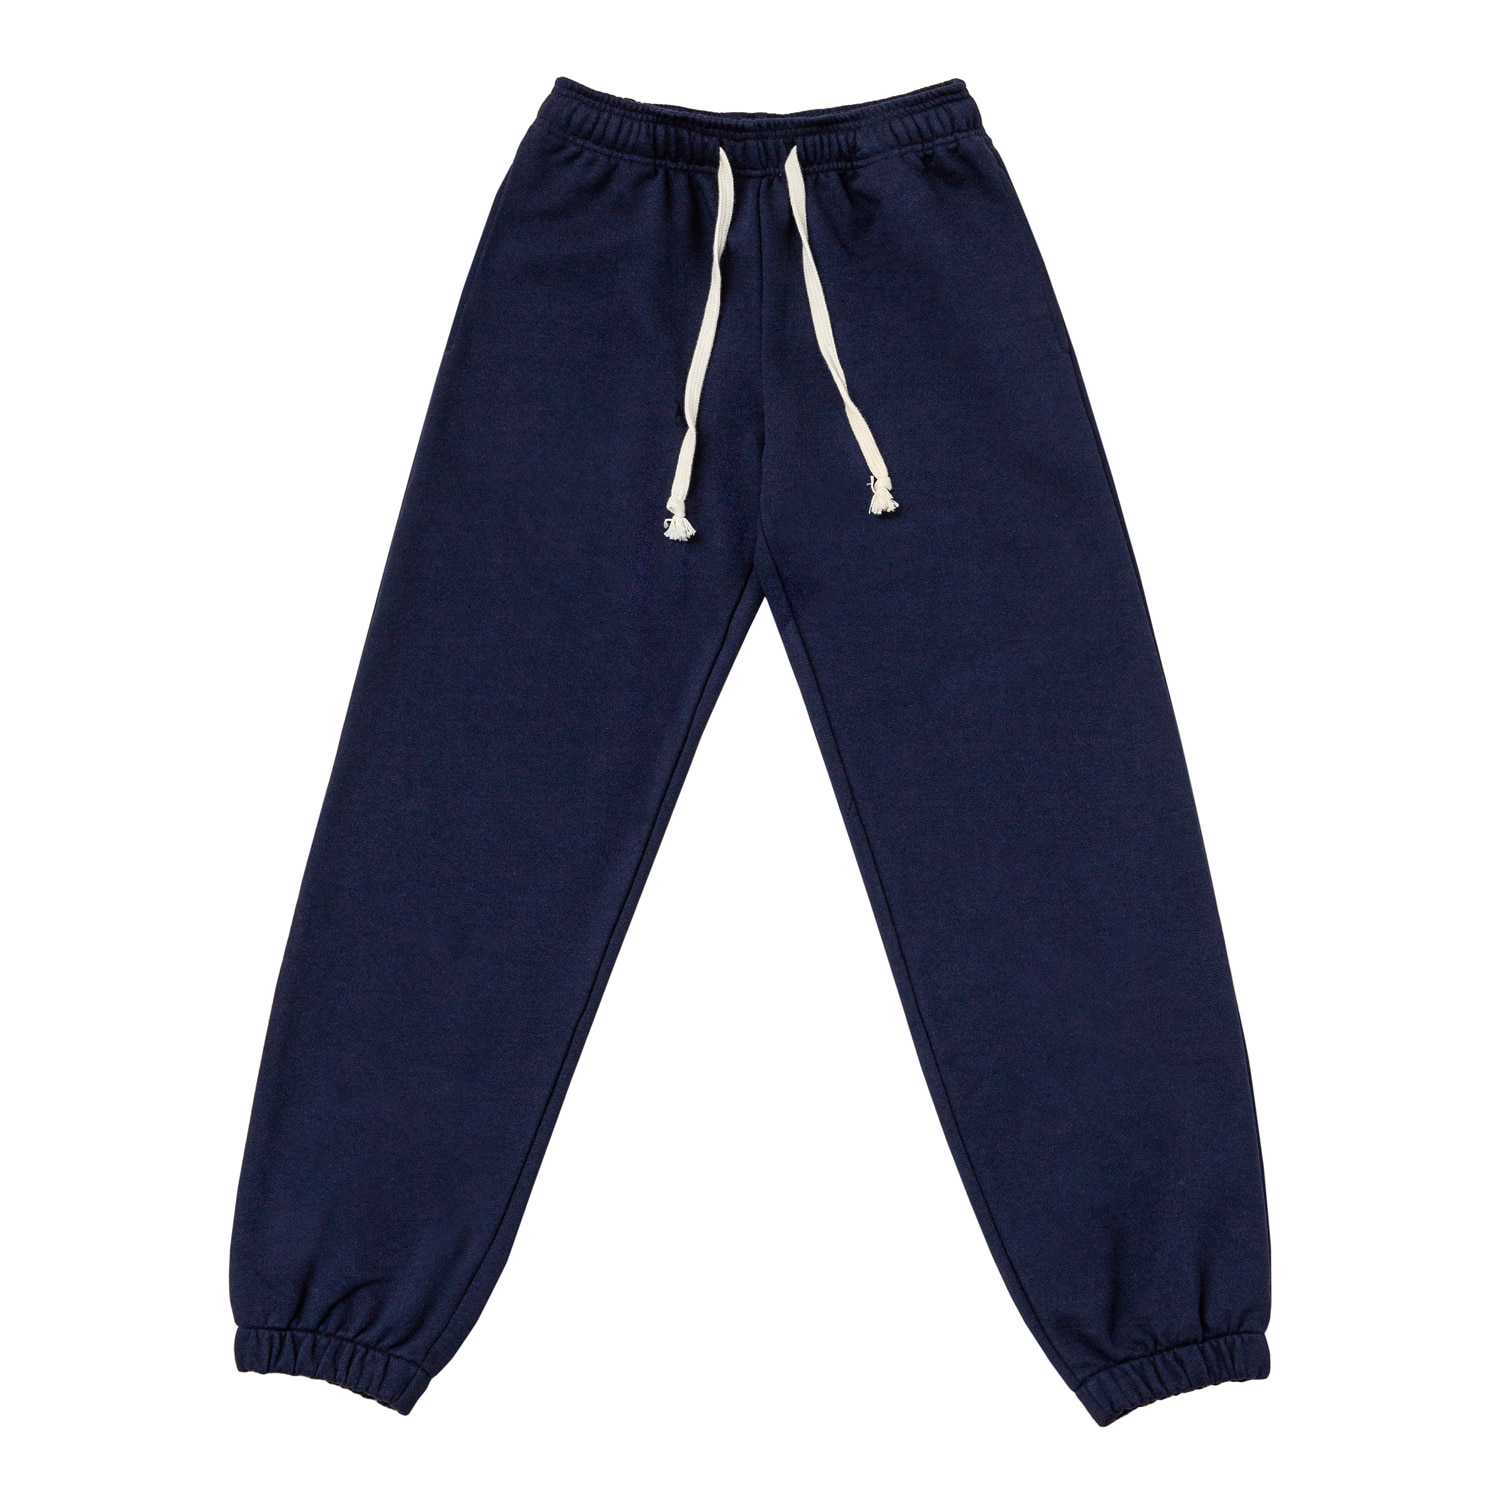 4th) ORE COTTON 005 jogger PT Navy [05.06(THU) PM 02:00]